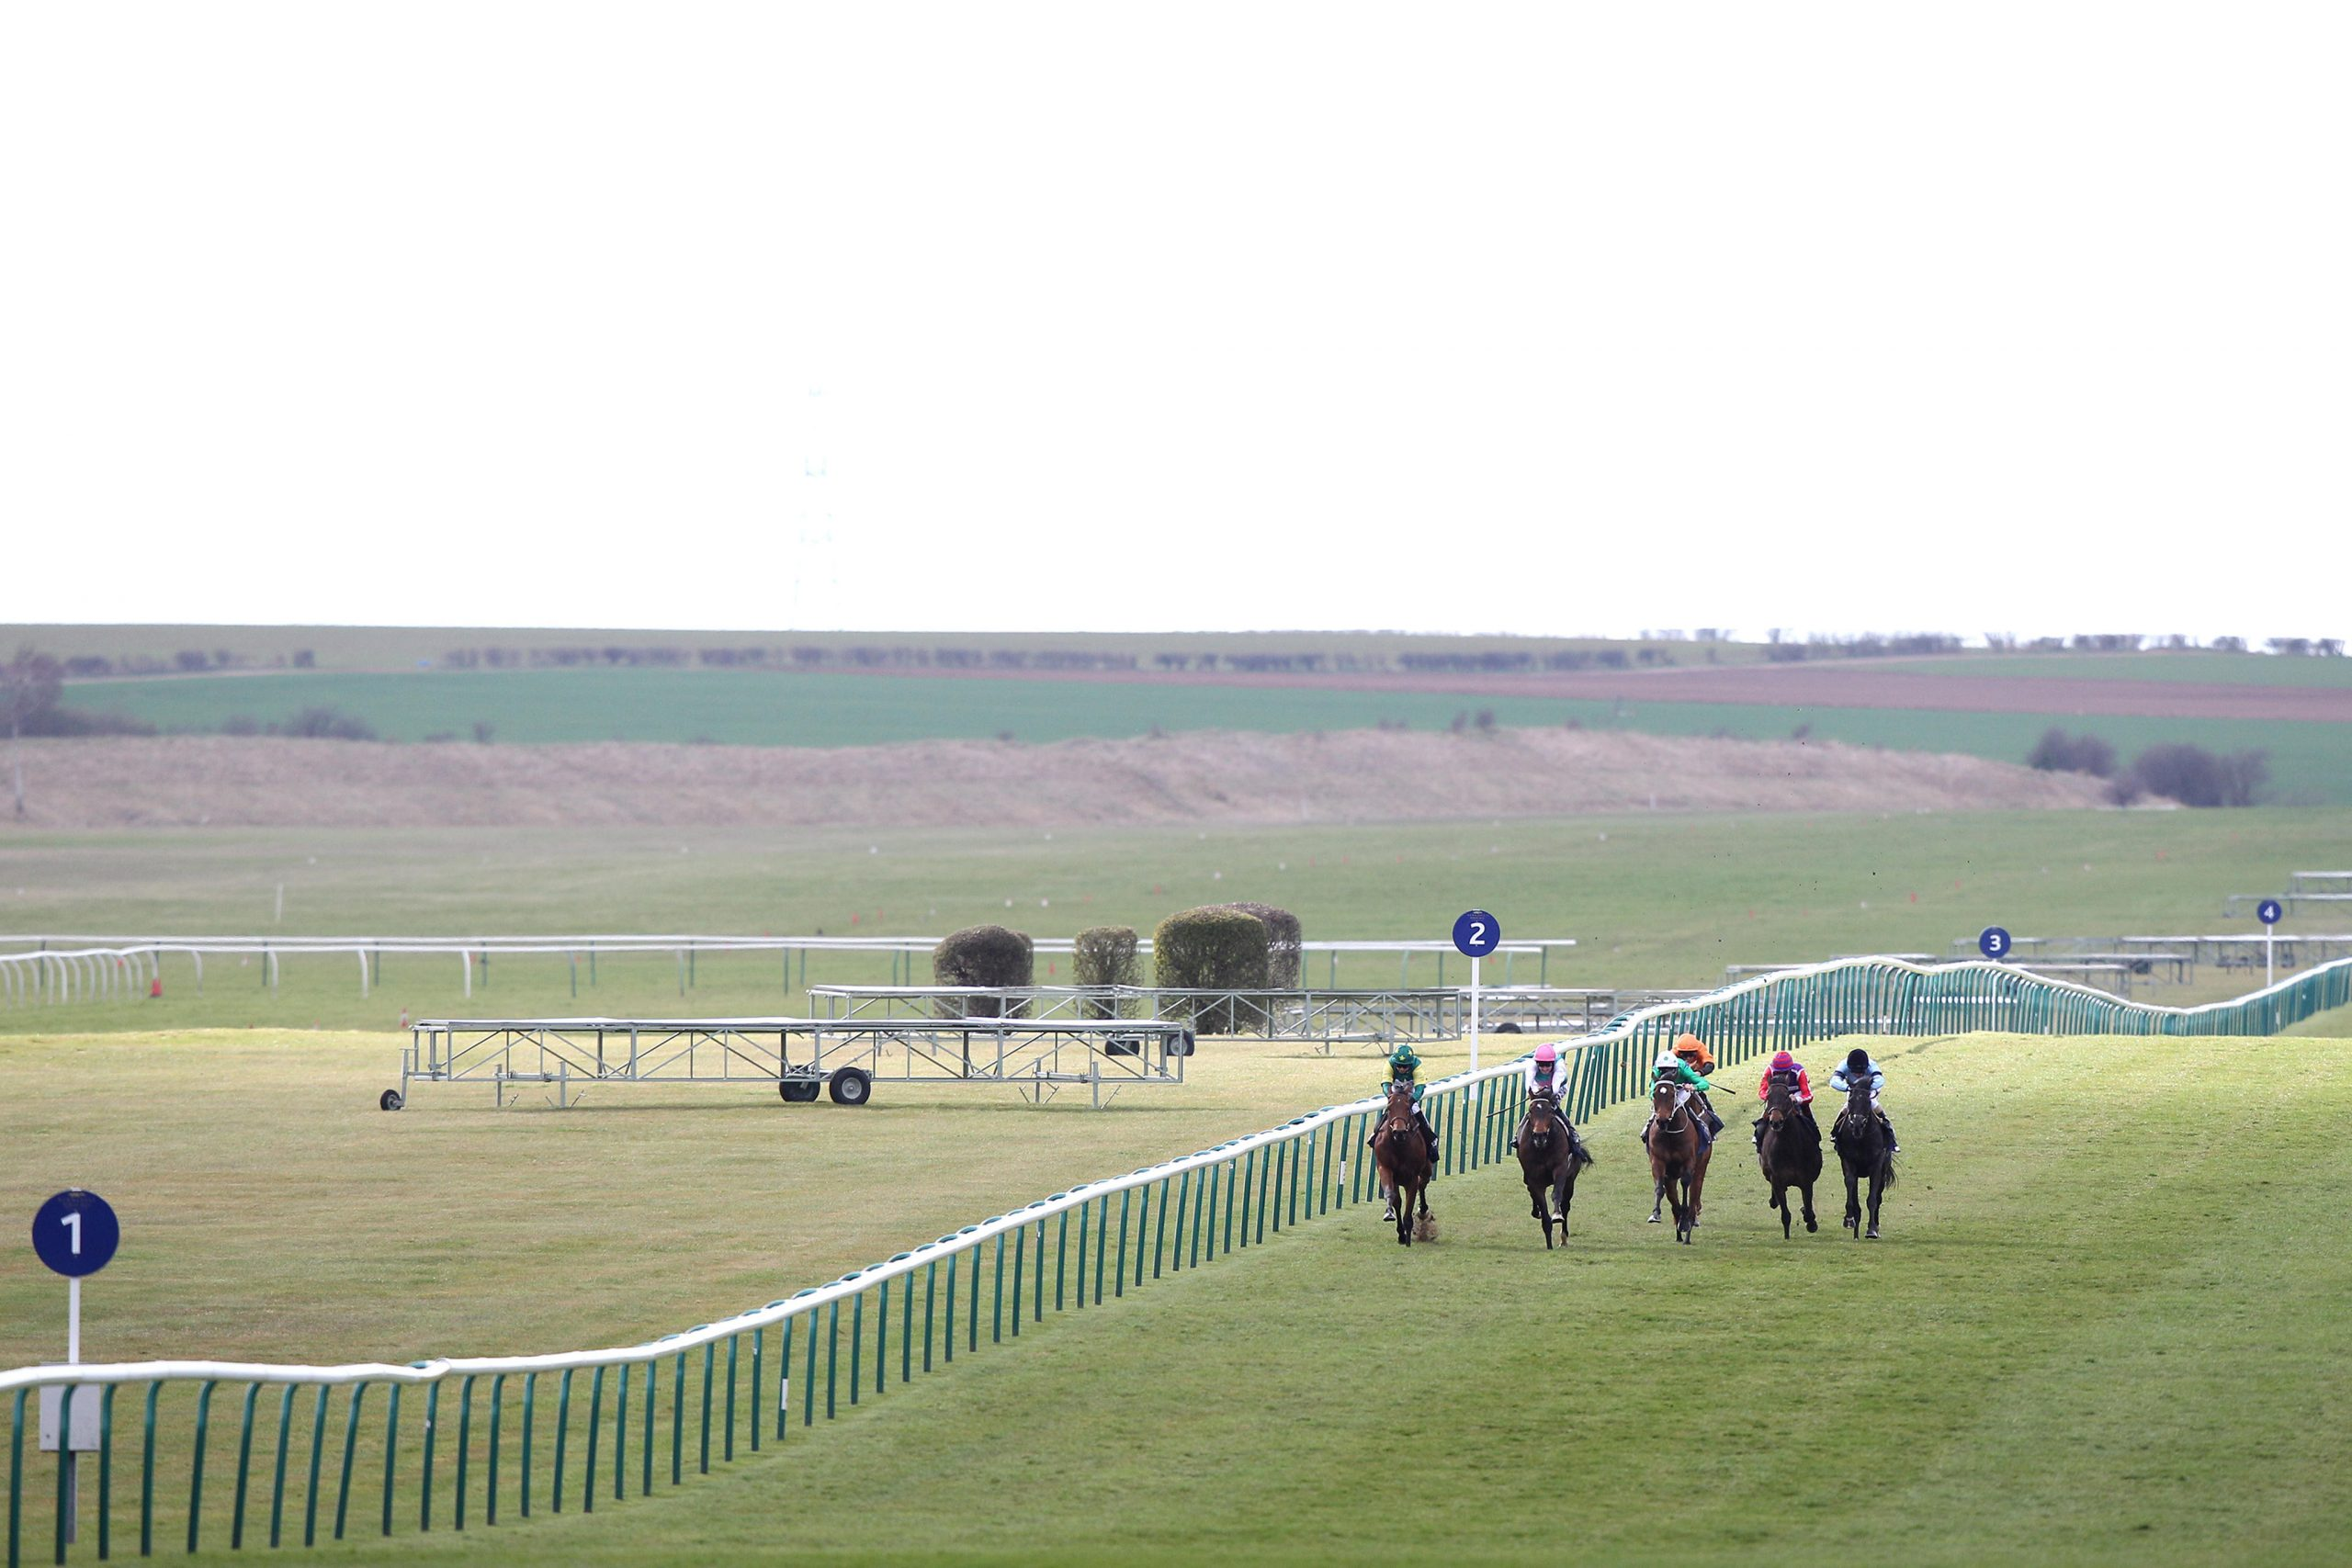 Horse Racing - 2013 Craven Meeting - Day Two - Newmarket Racecourse